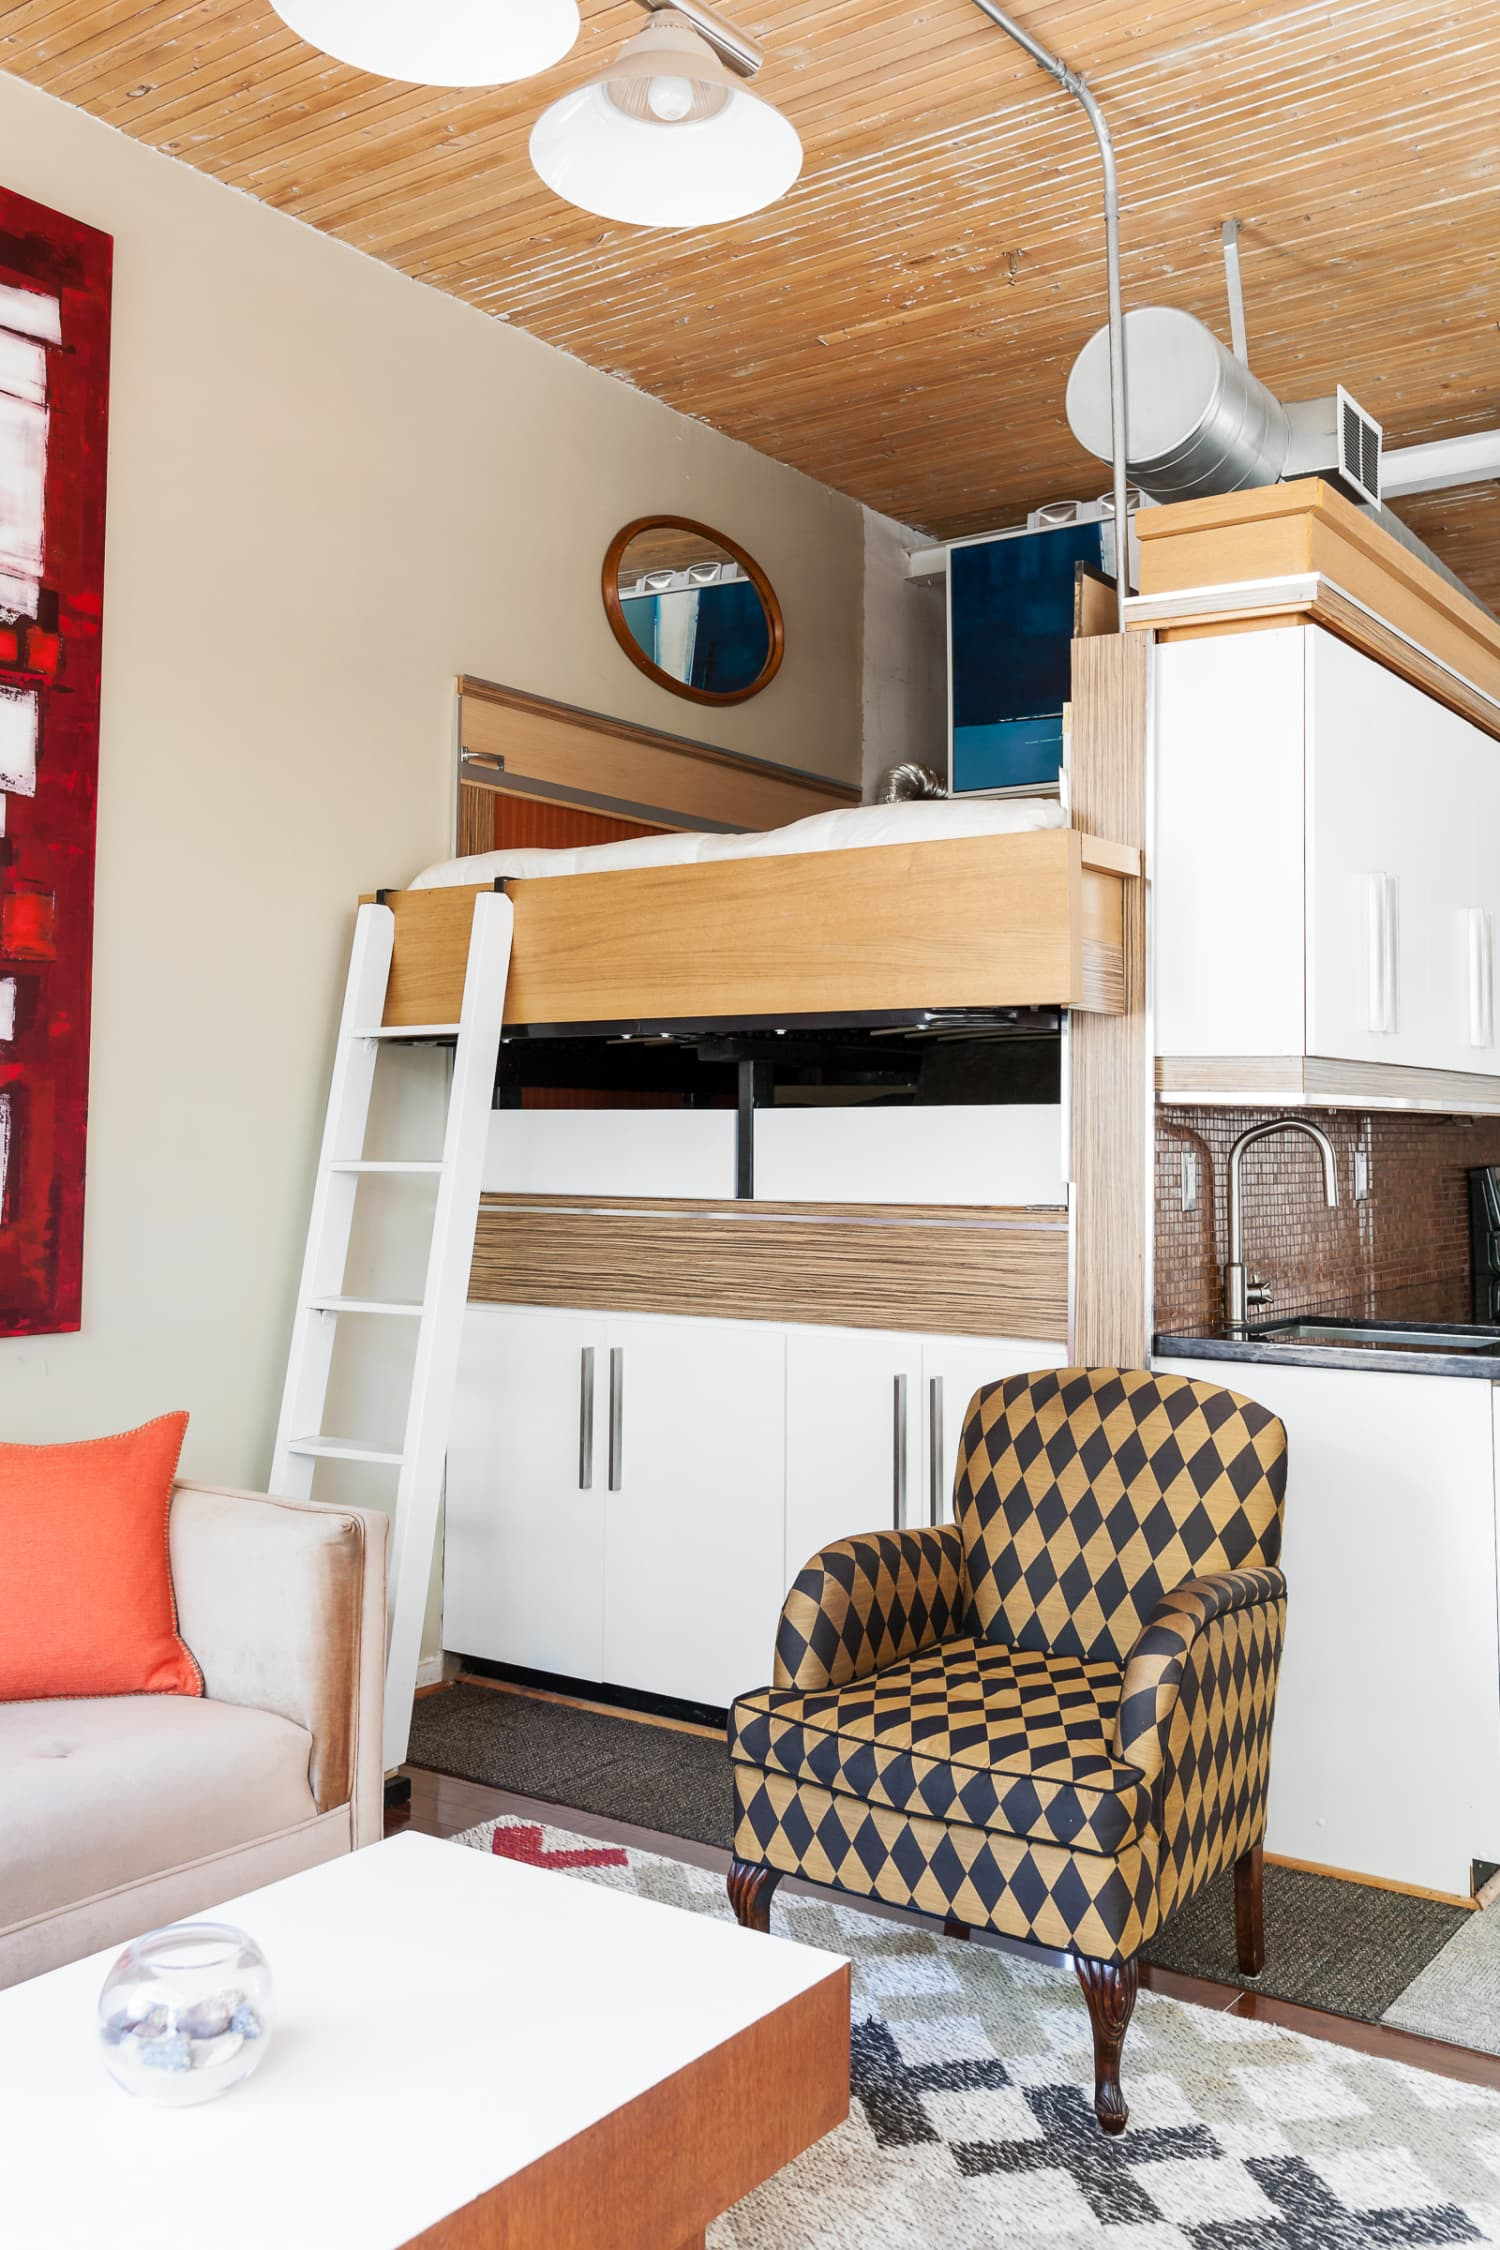 10 Full Size Modern Loft Beds for Your Tiny Apartment